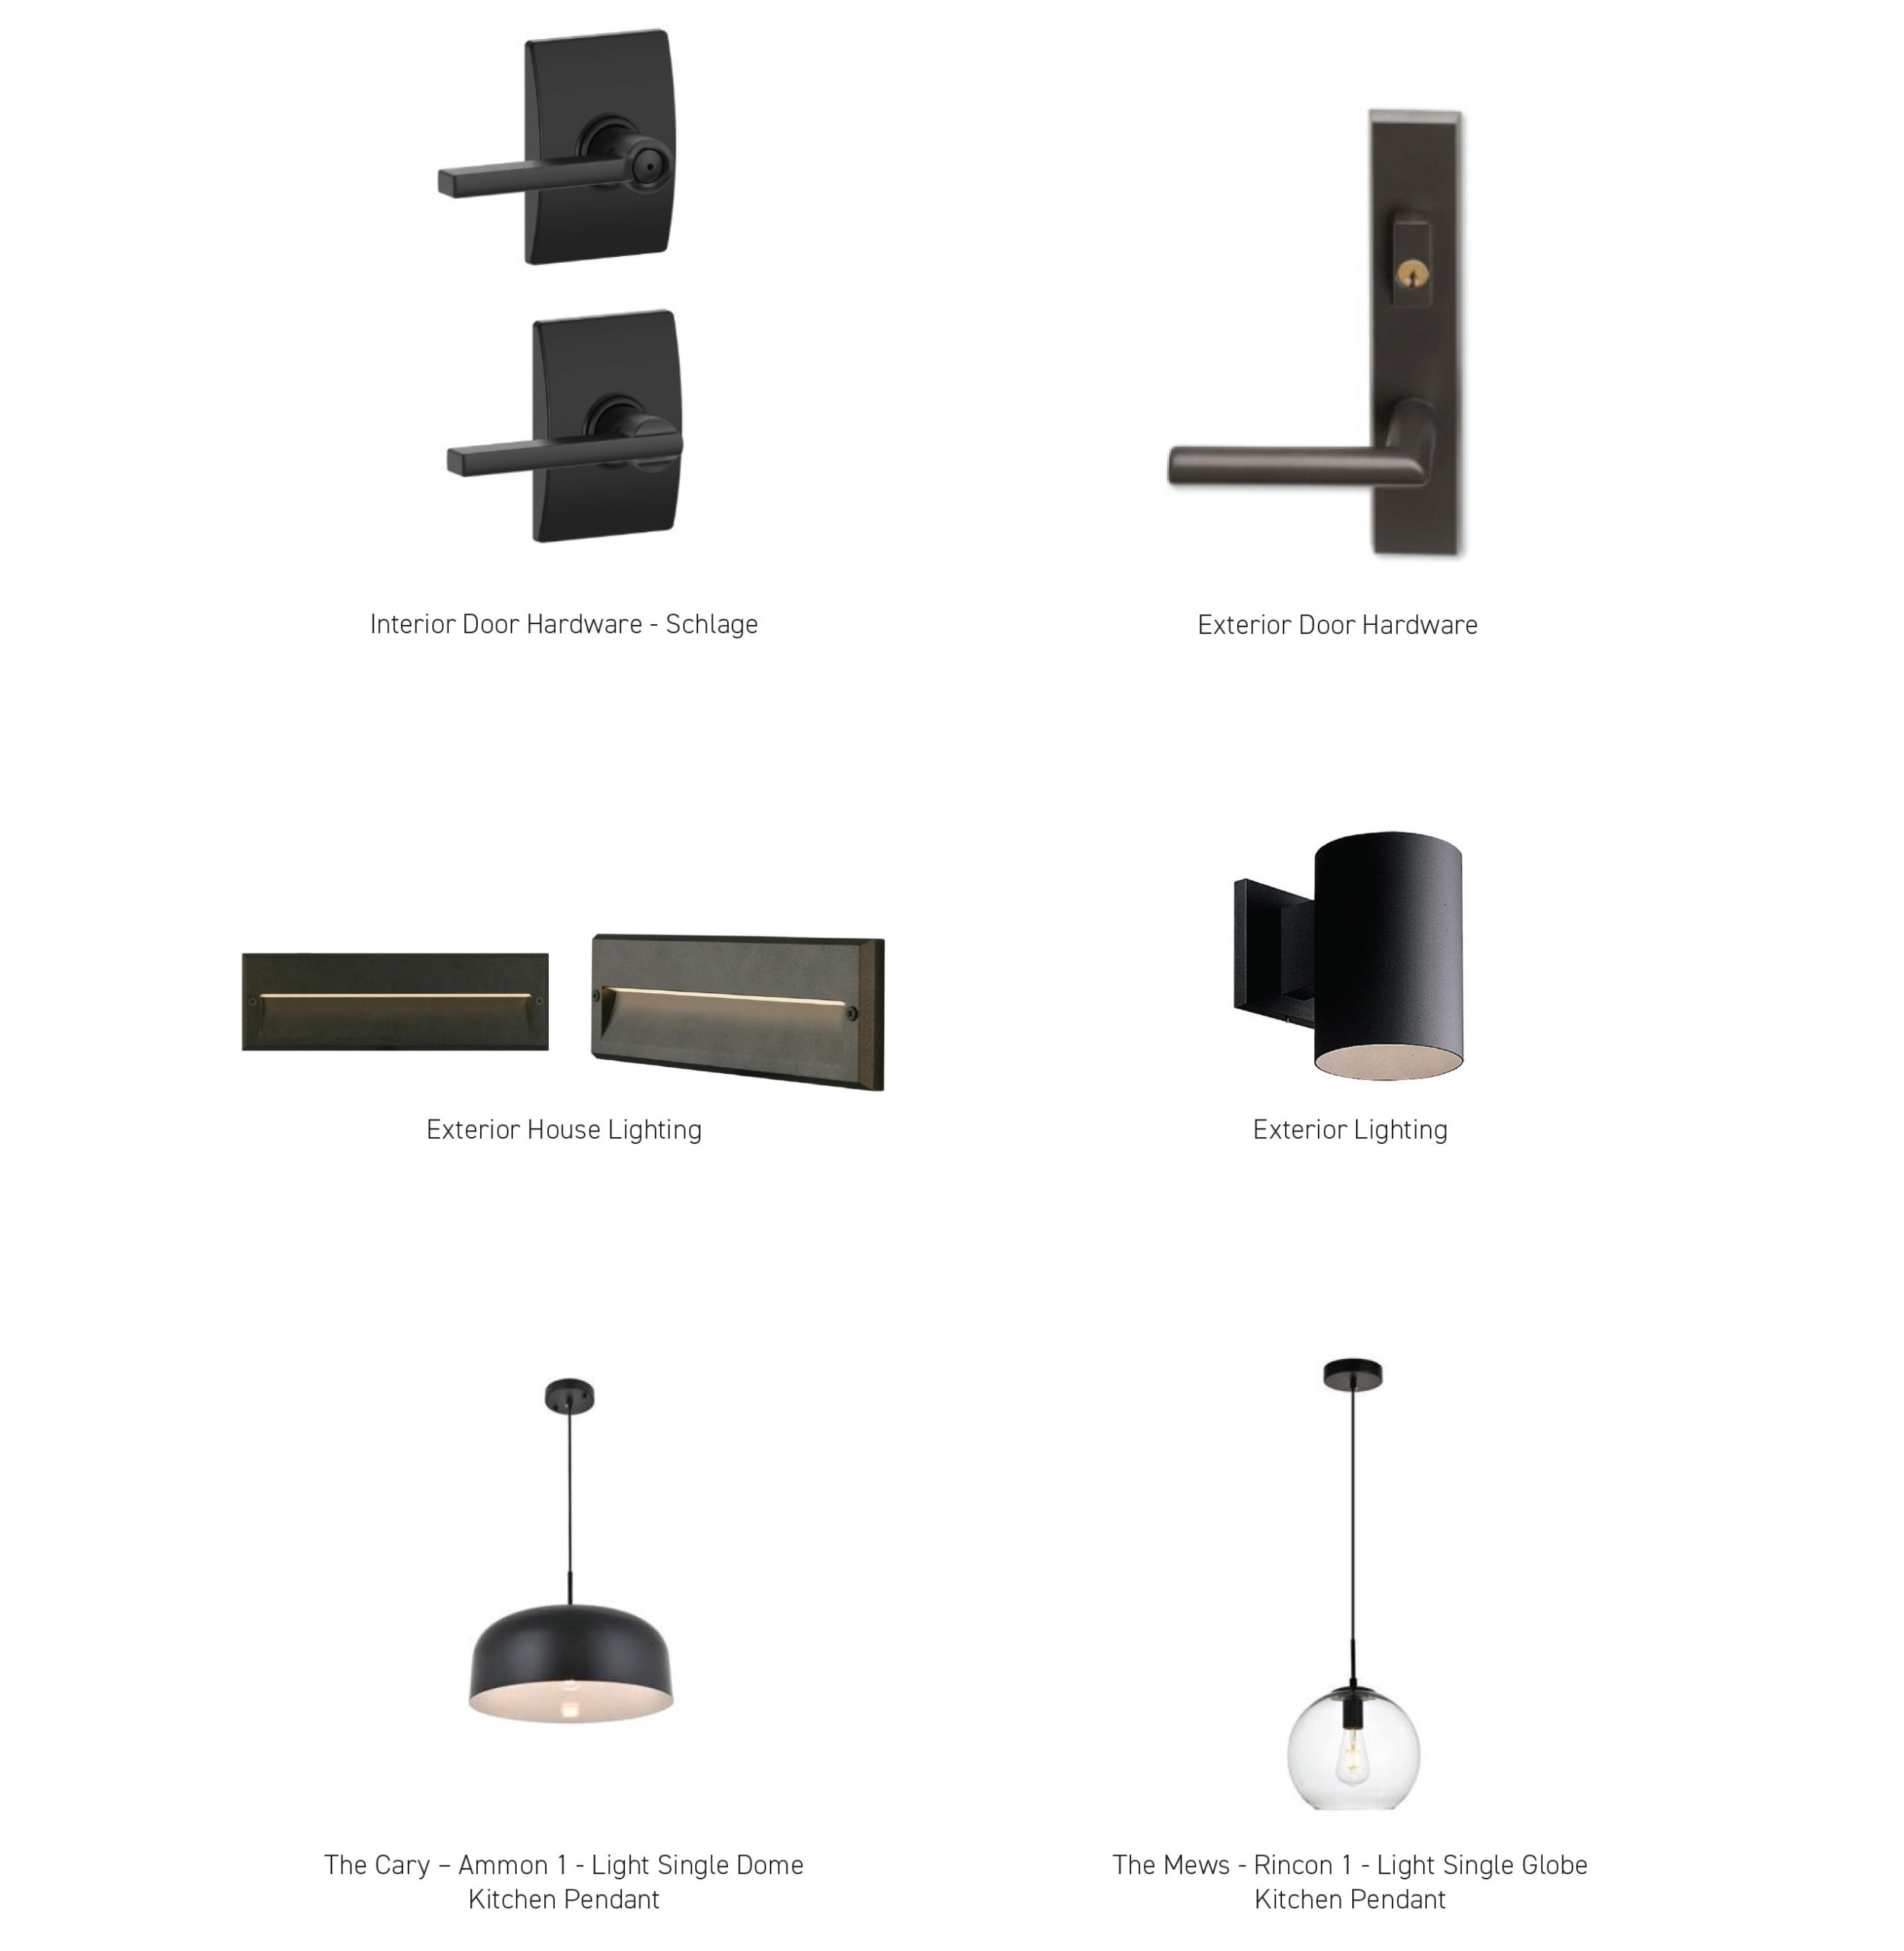 Interior/Exterior Lighting + Hardware - The 2200 at Cary